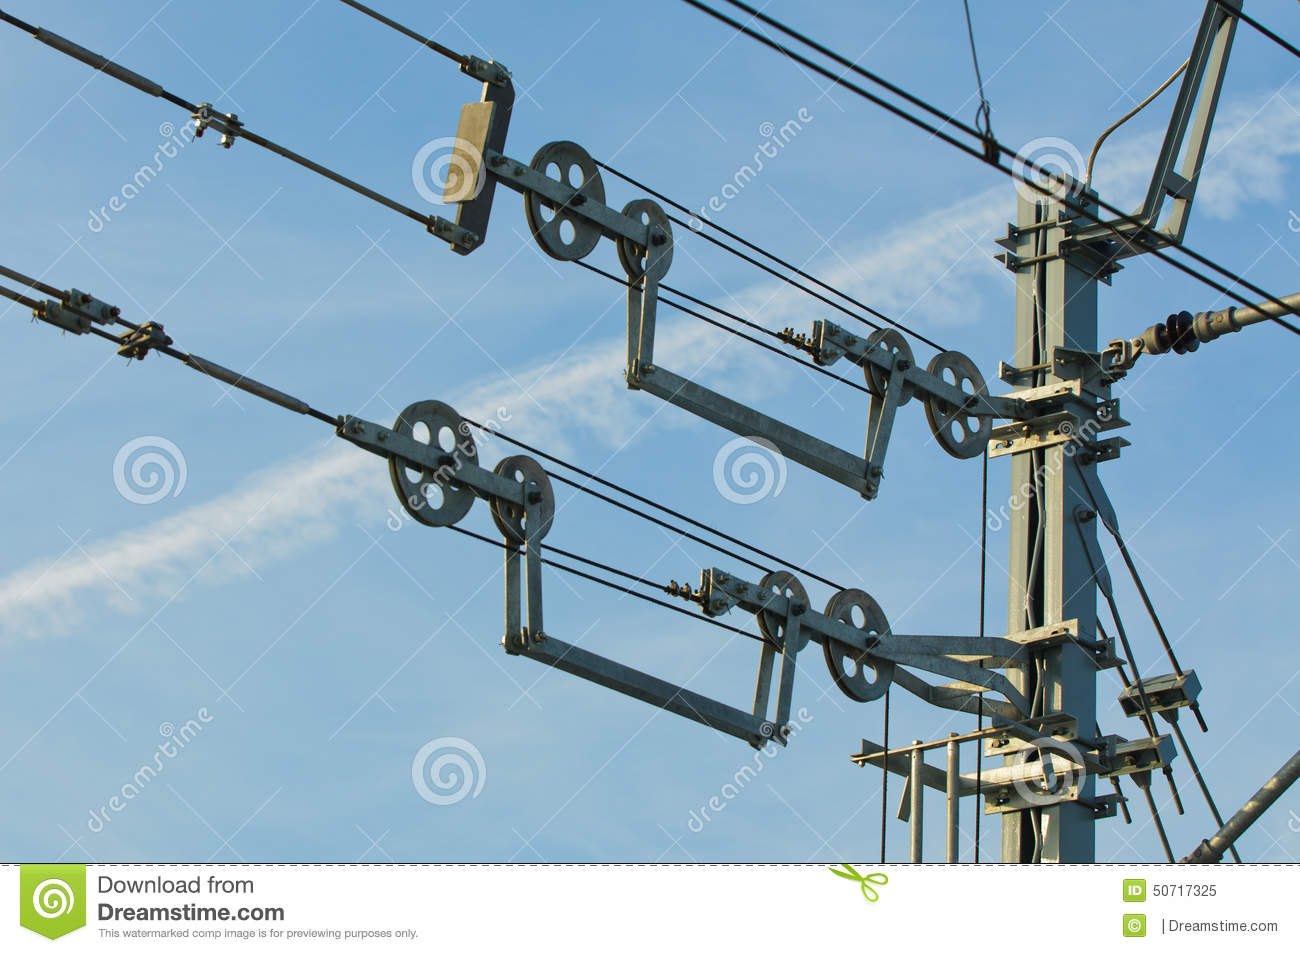 Overhead contact wires of electrified railway tracks kept under tension